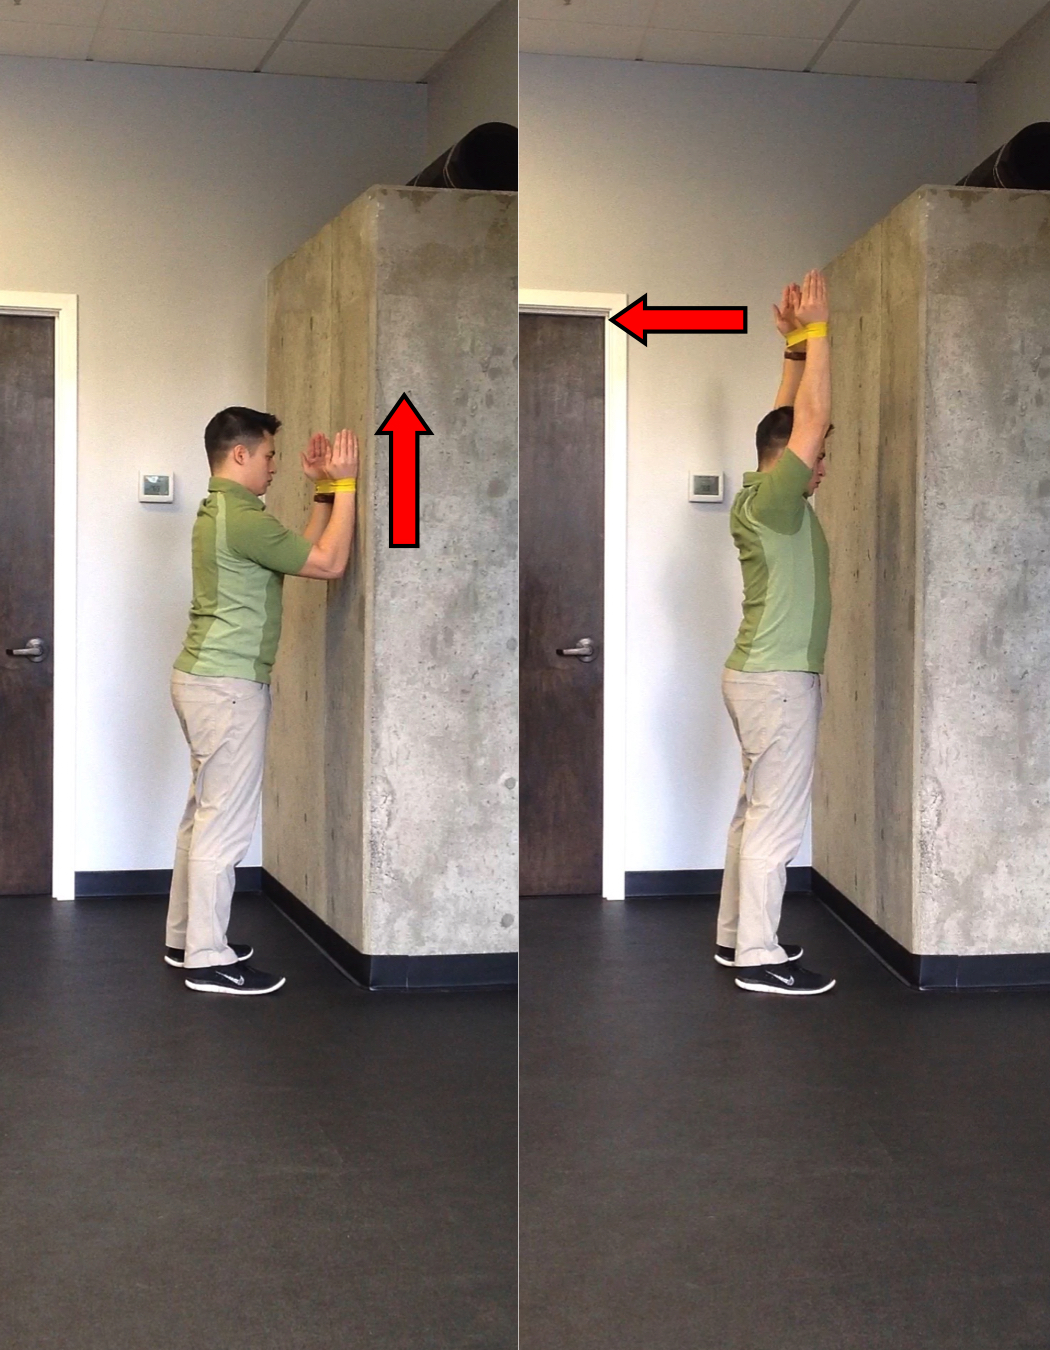 Wall Slide Start and Finish Position